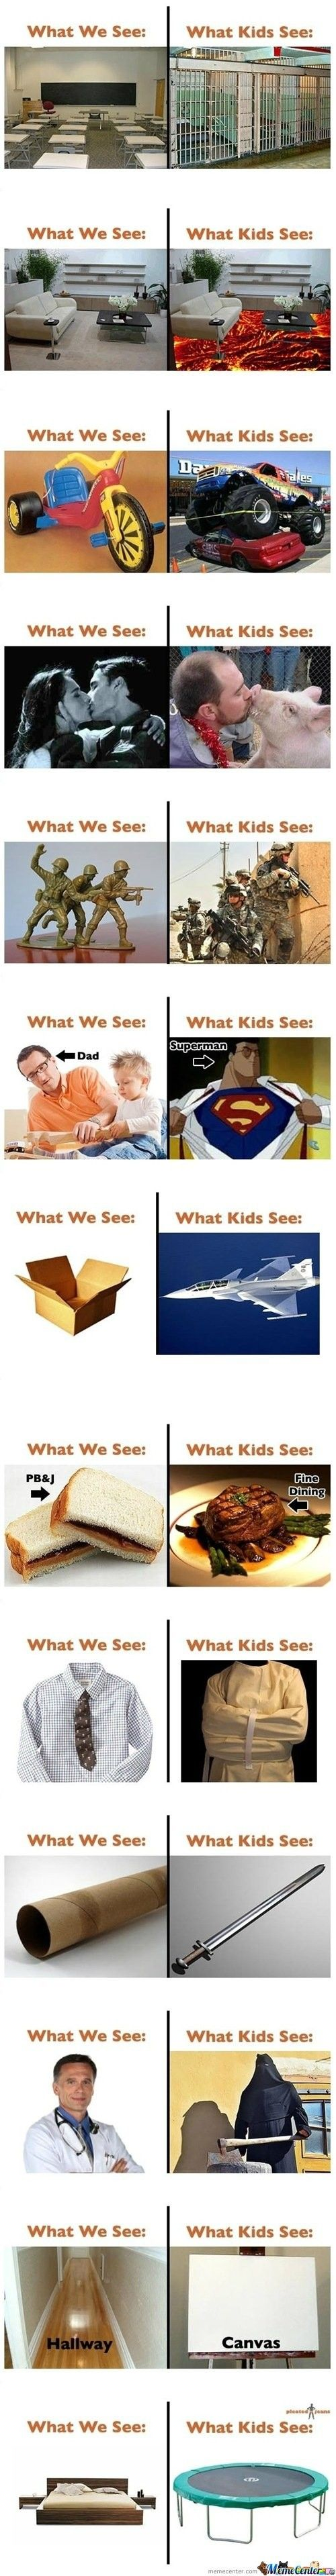 What adults see vs what kids see - Little White Lion